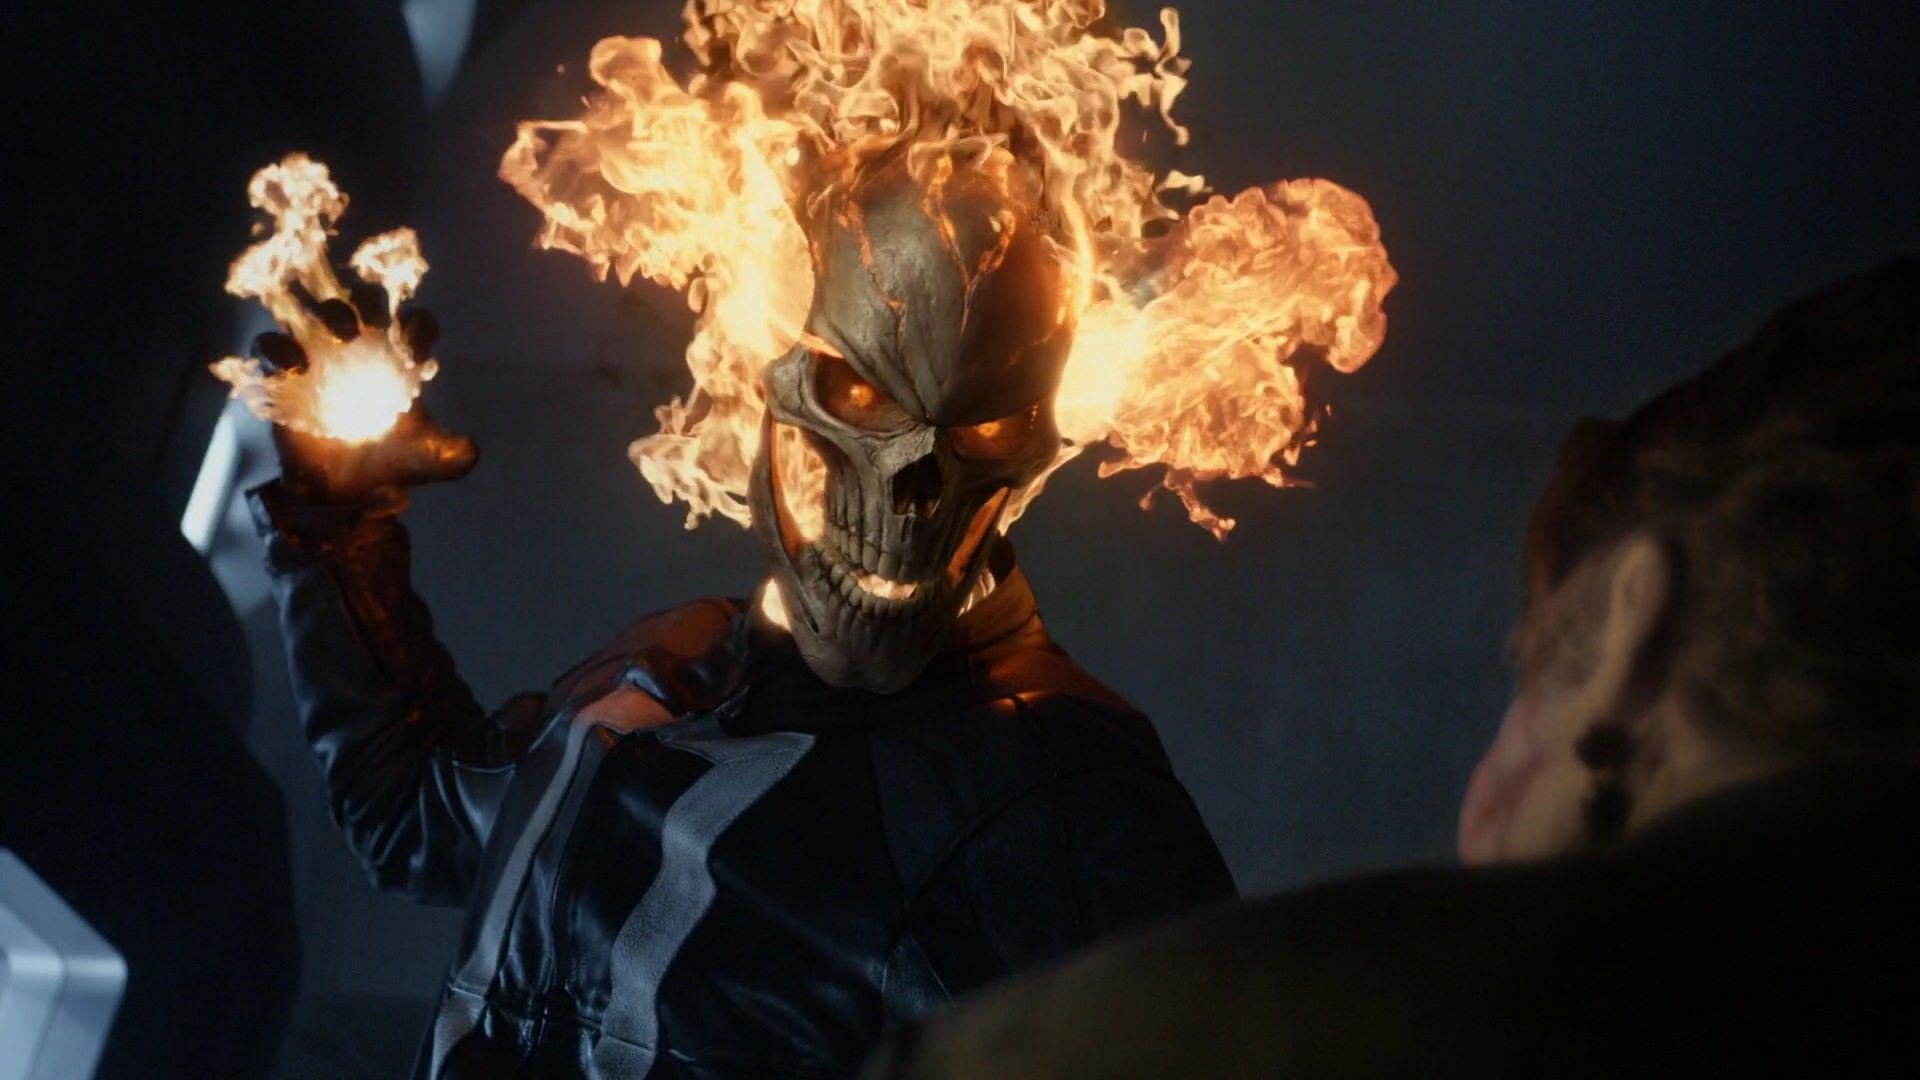 4k Ghost Rider Wallpapers Top Free 4k Ghost Rider Backgrounds